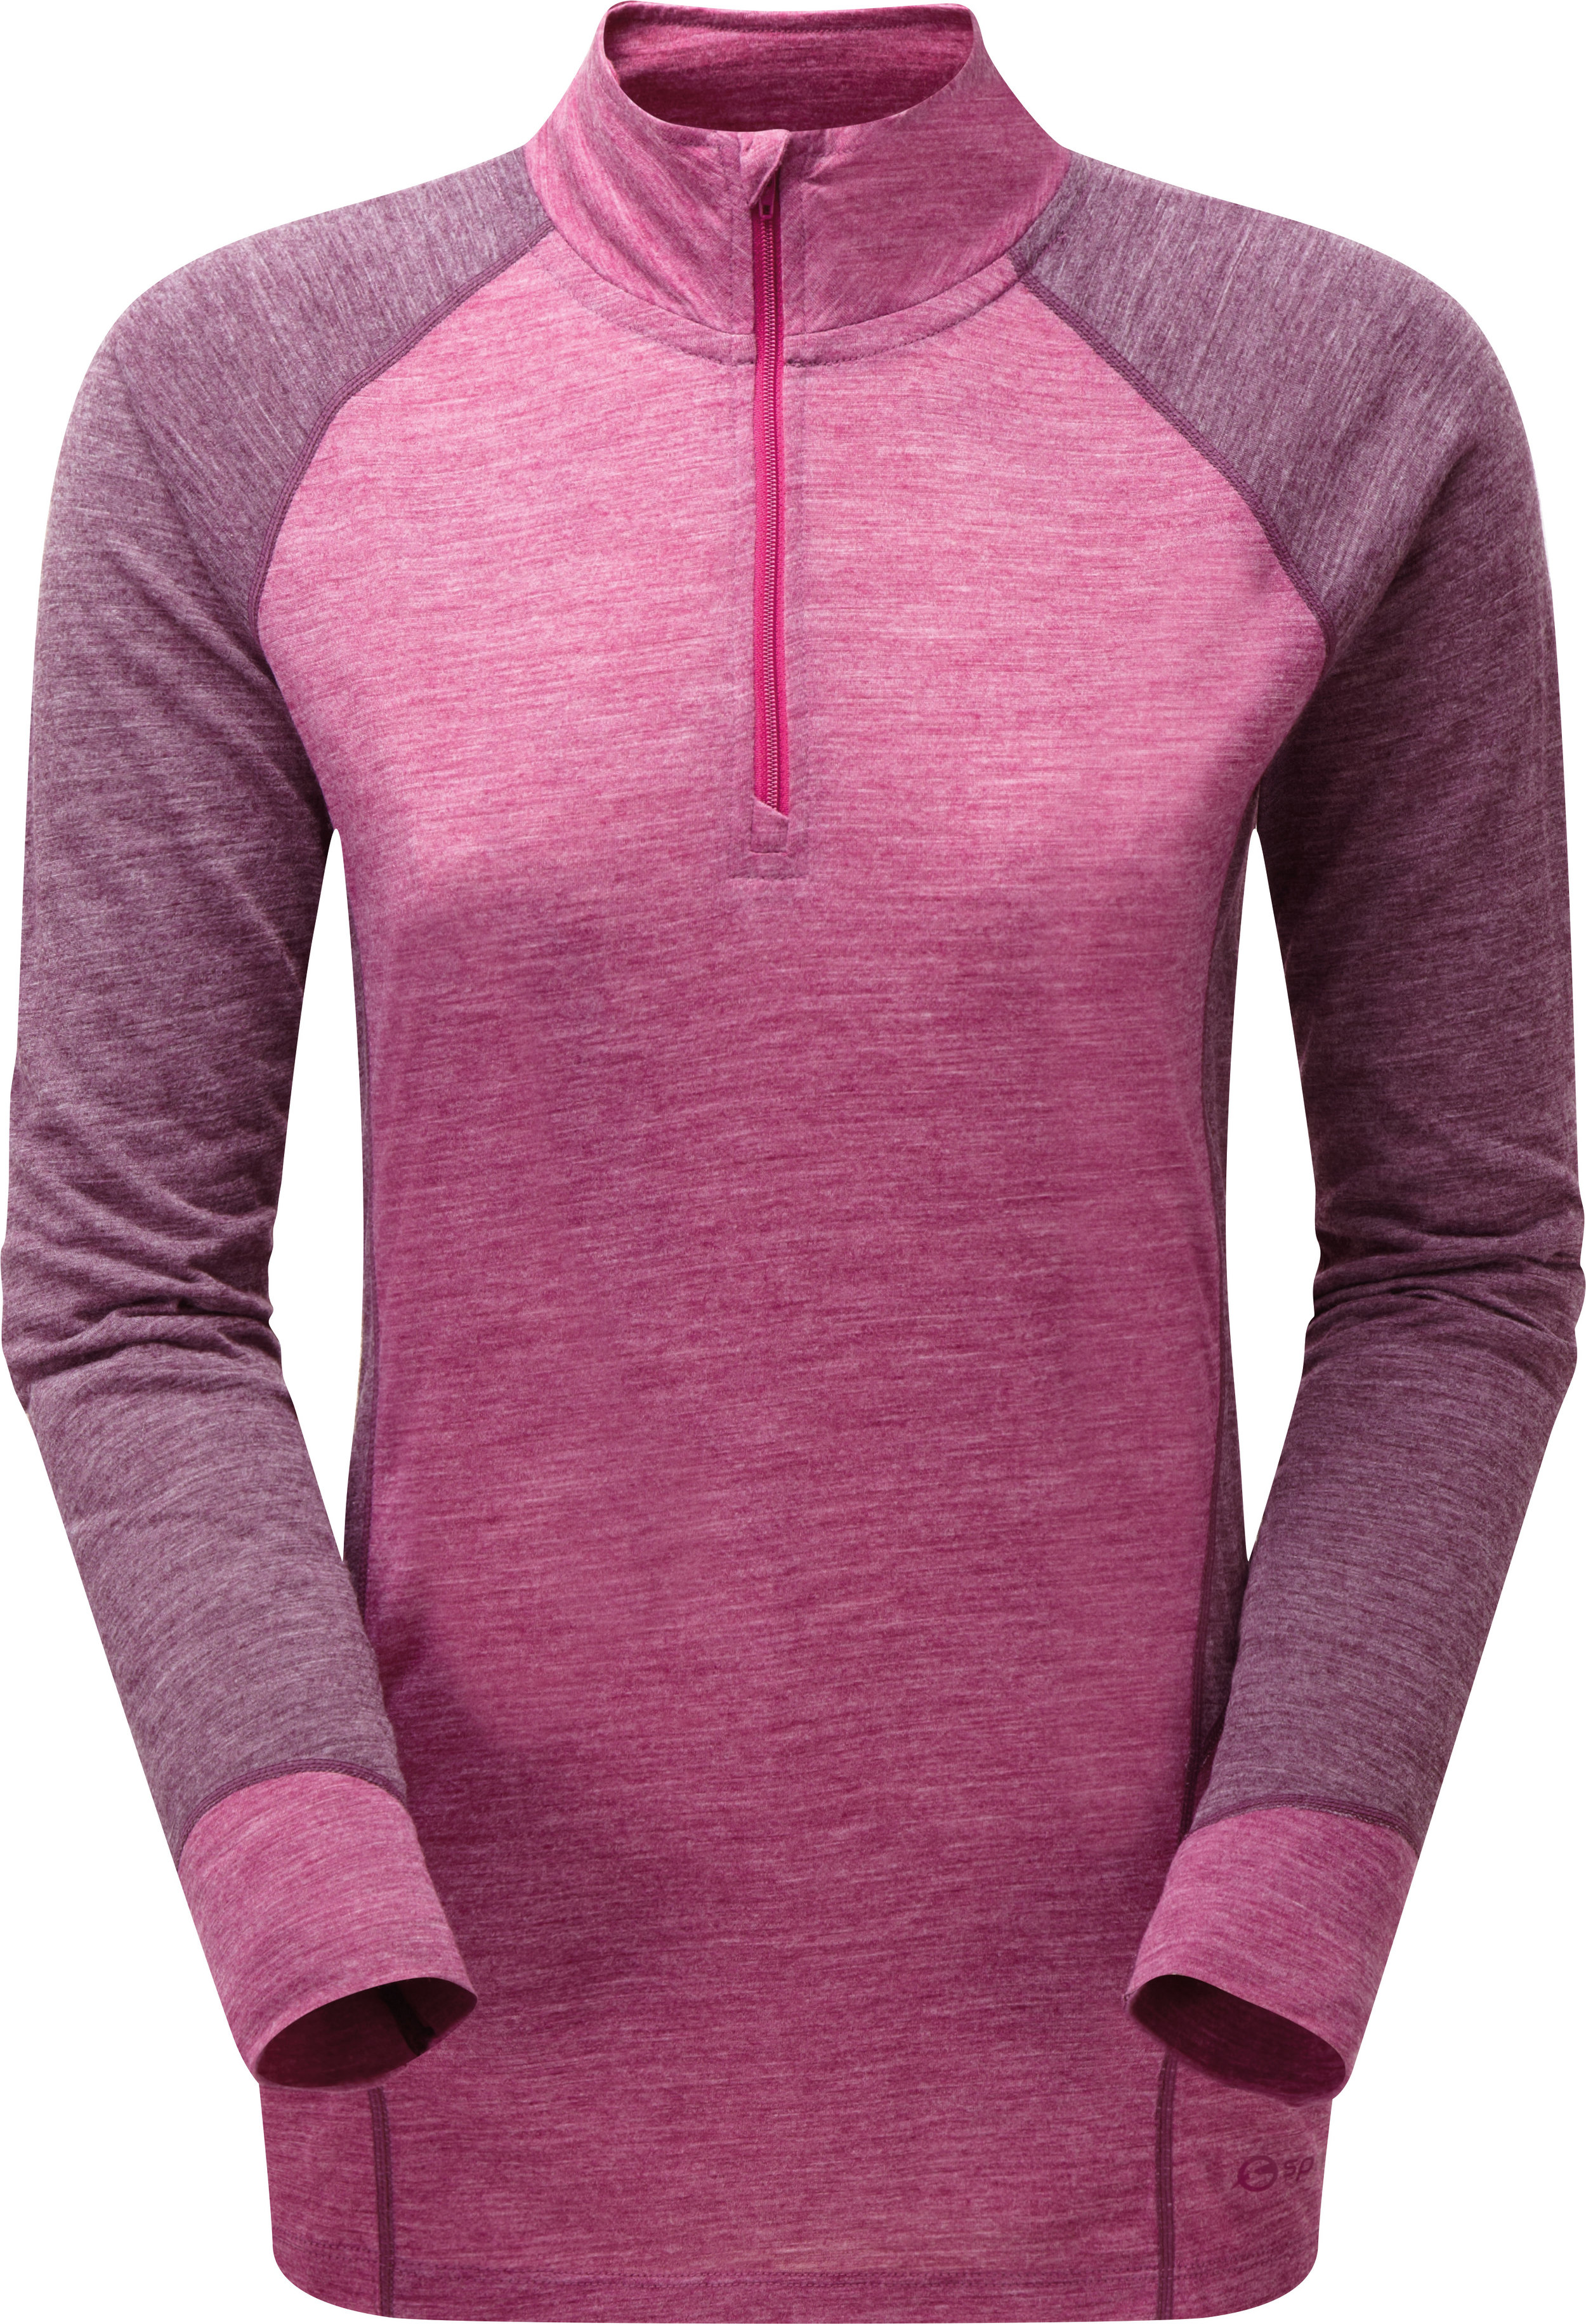 SP-002592 Kara Half-Zip_Berry.jpg